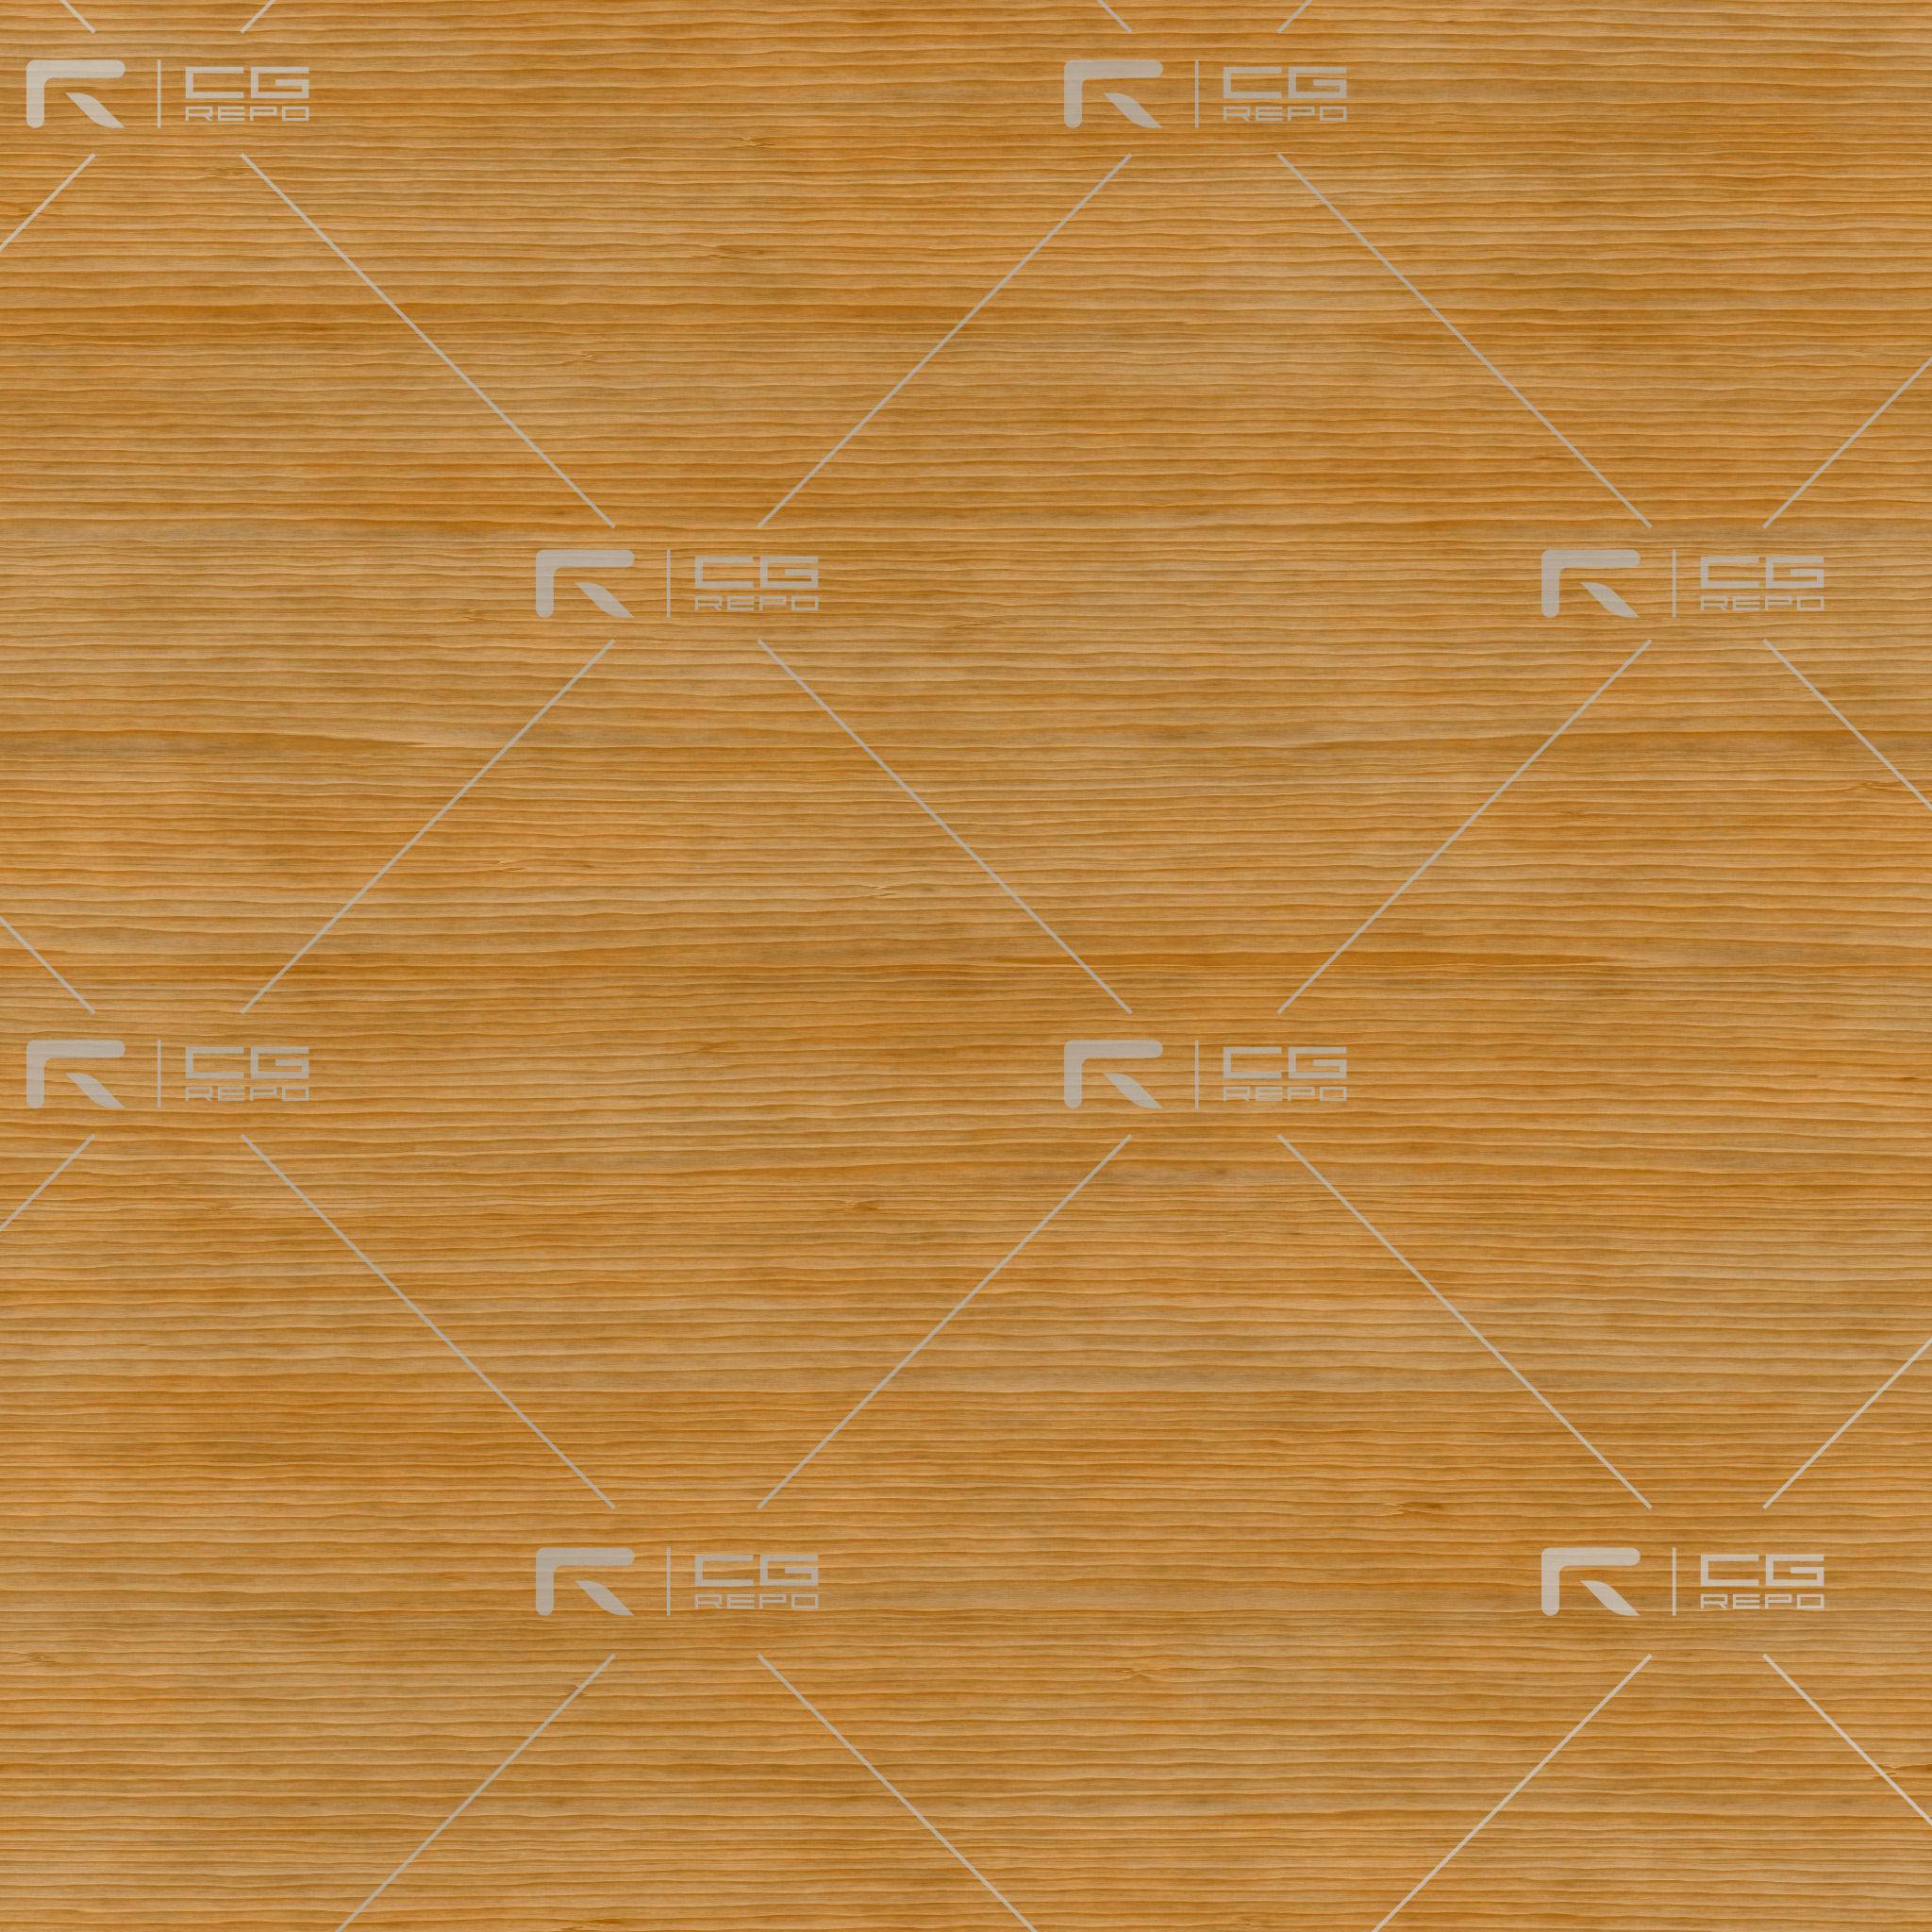 Oak - Natural - Rift Sawn BaseColor Texture